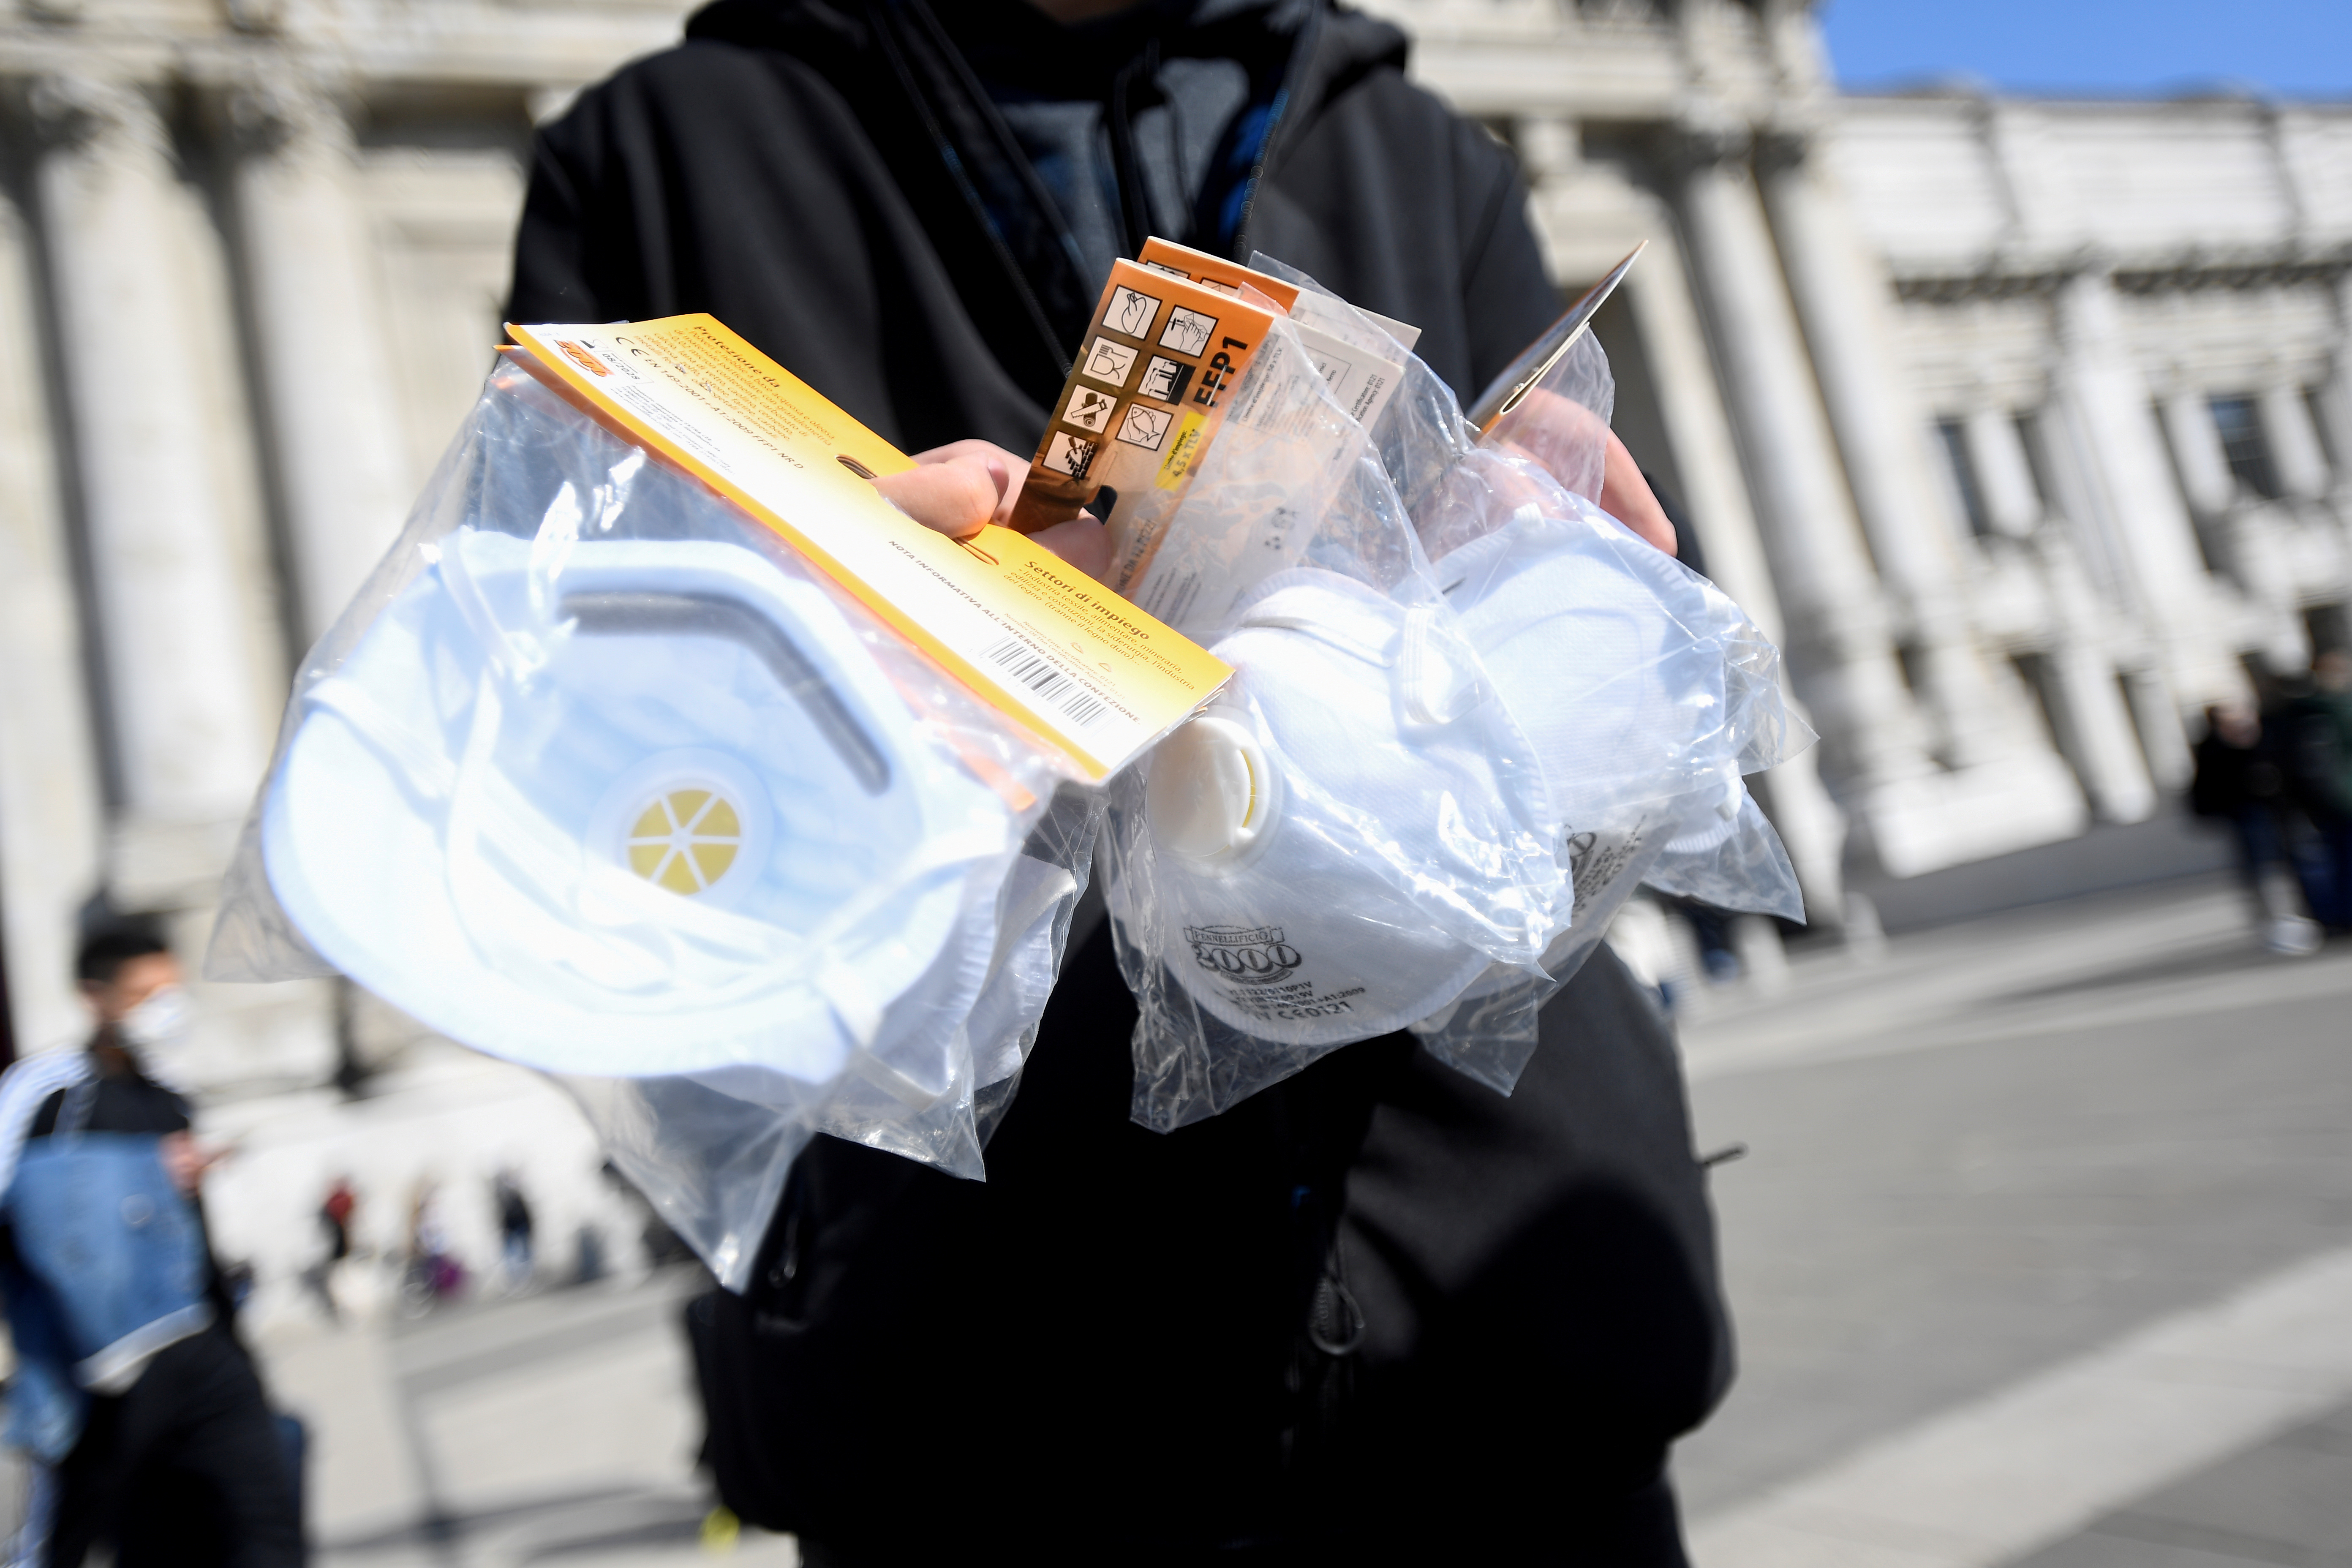 A street vendor sells face masks outside a railway station in Milan following the coronavirus outbreak. Italy, South Korea and Japan have all seen a spike in infections, sparking fears of a global pandemic. Photo: Reuters